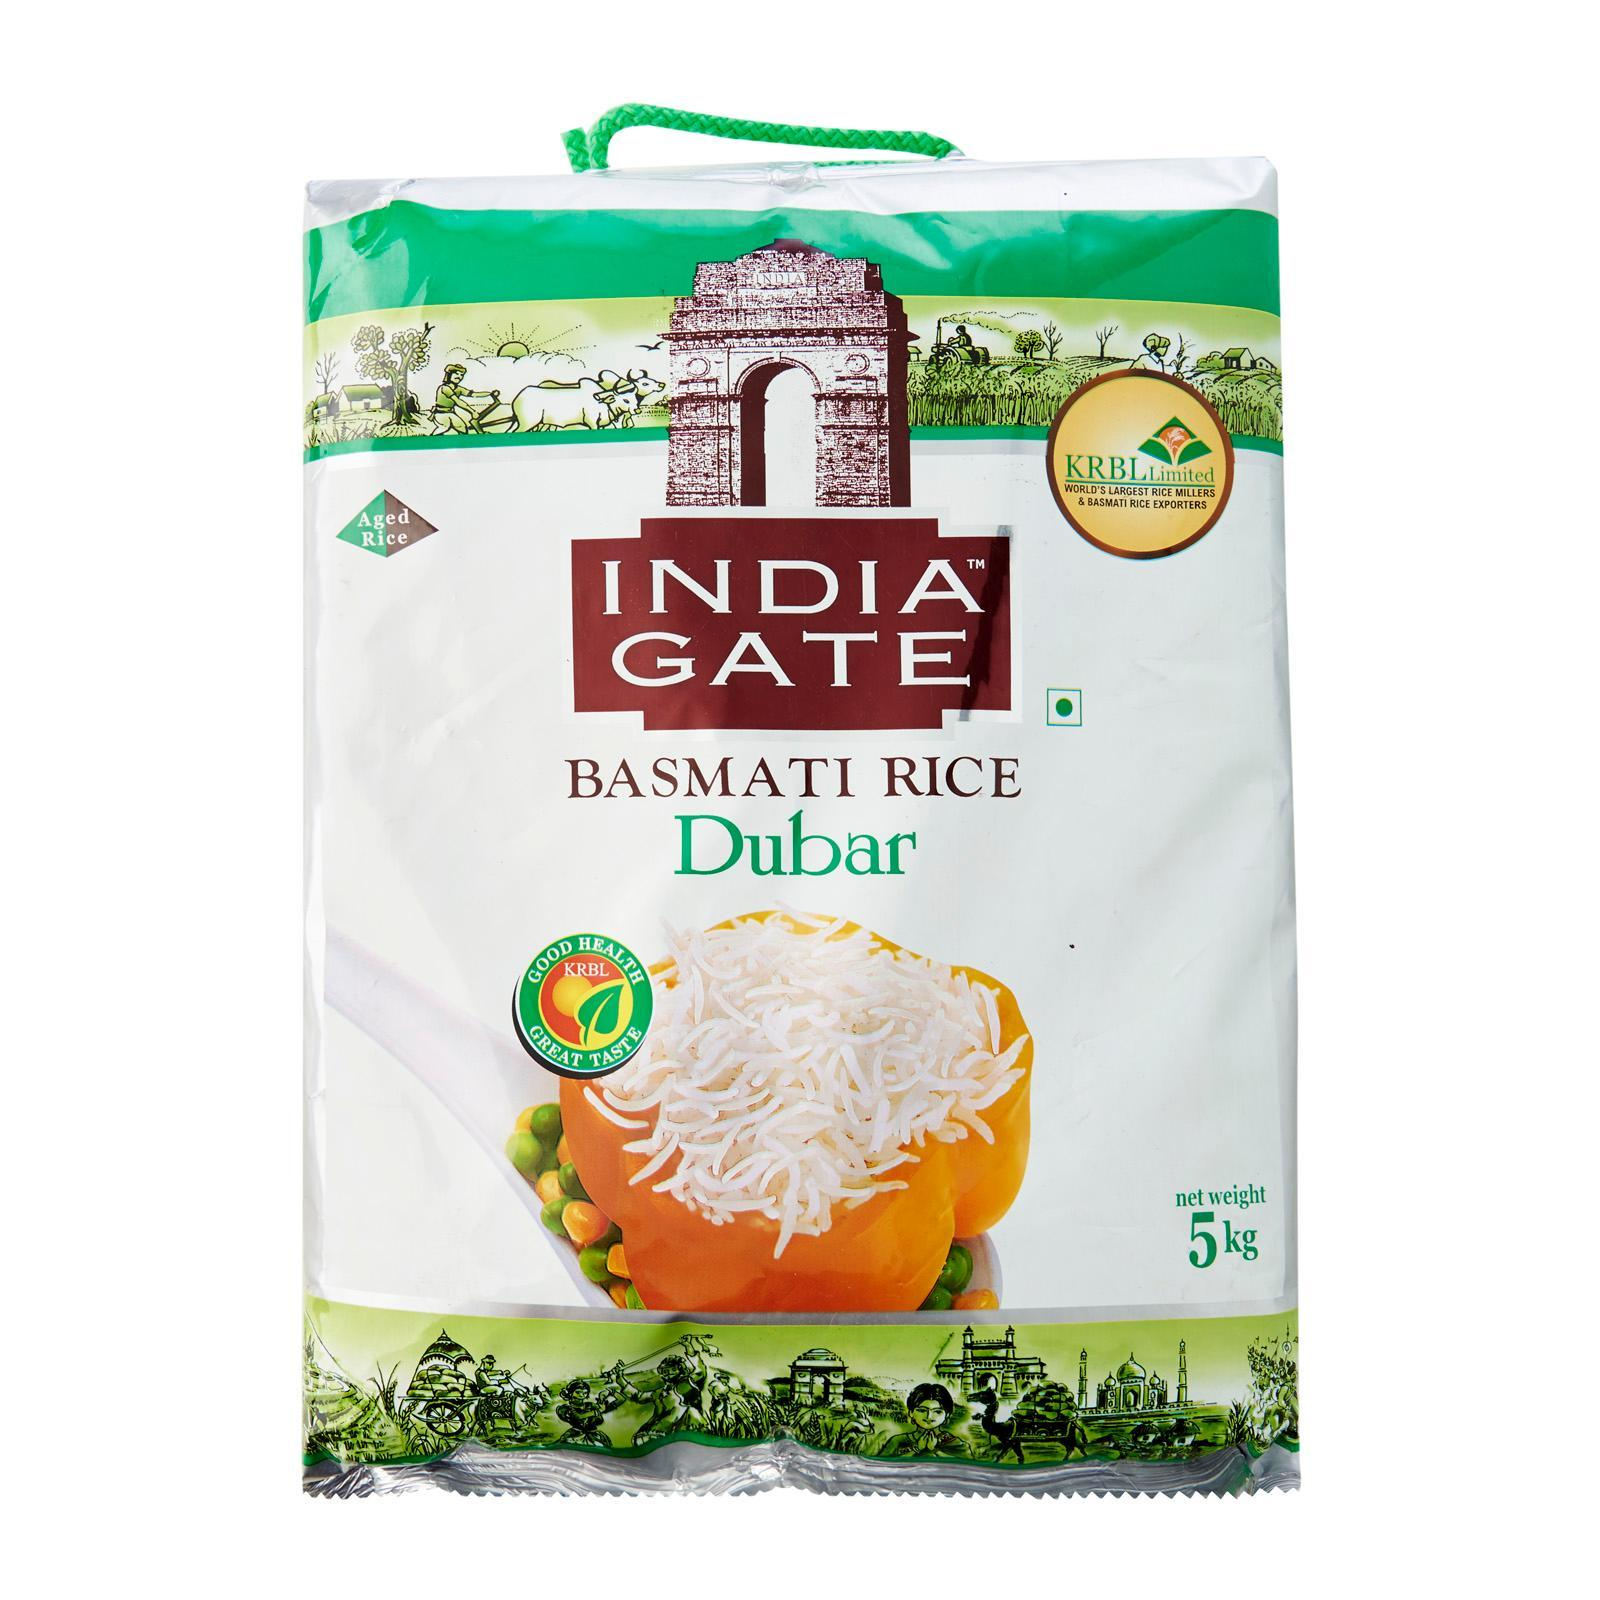 Indiagate Dubar Basmati Rice 5 Kg Increased Quantities Of Minerals, Vitamins, Fiber And 2 Years Aged, Grown In India Farmland, Handpicked, Tasty And Suitable For Daily Consumption By Merlion Mart.